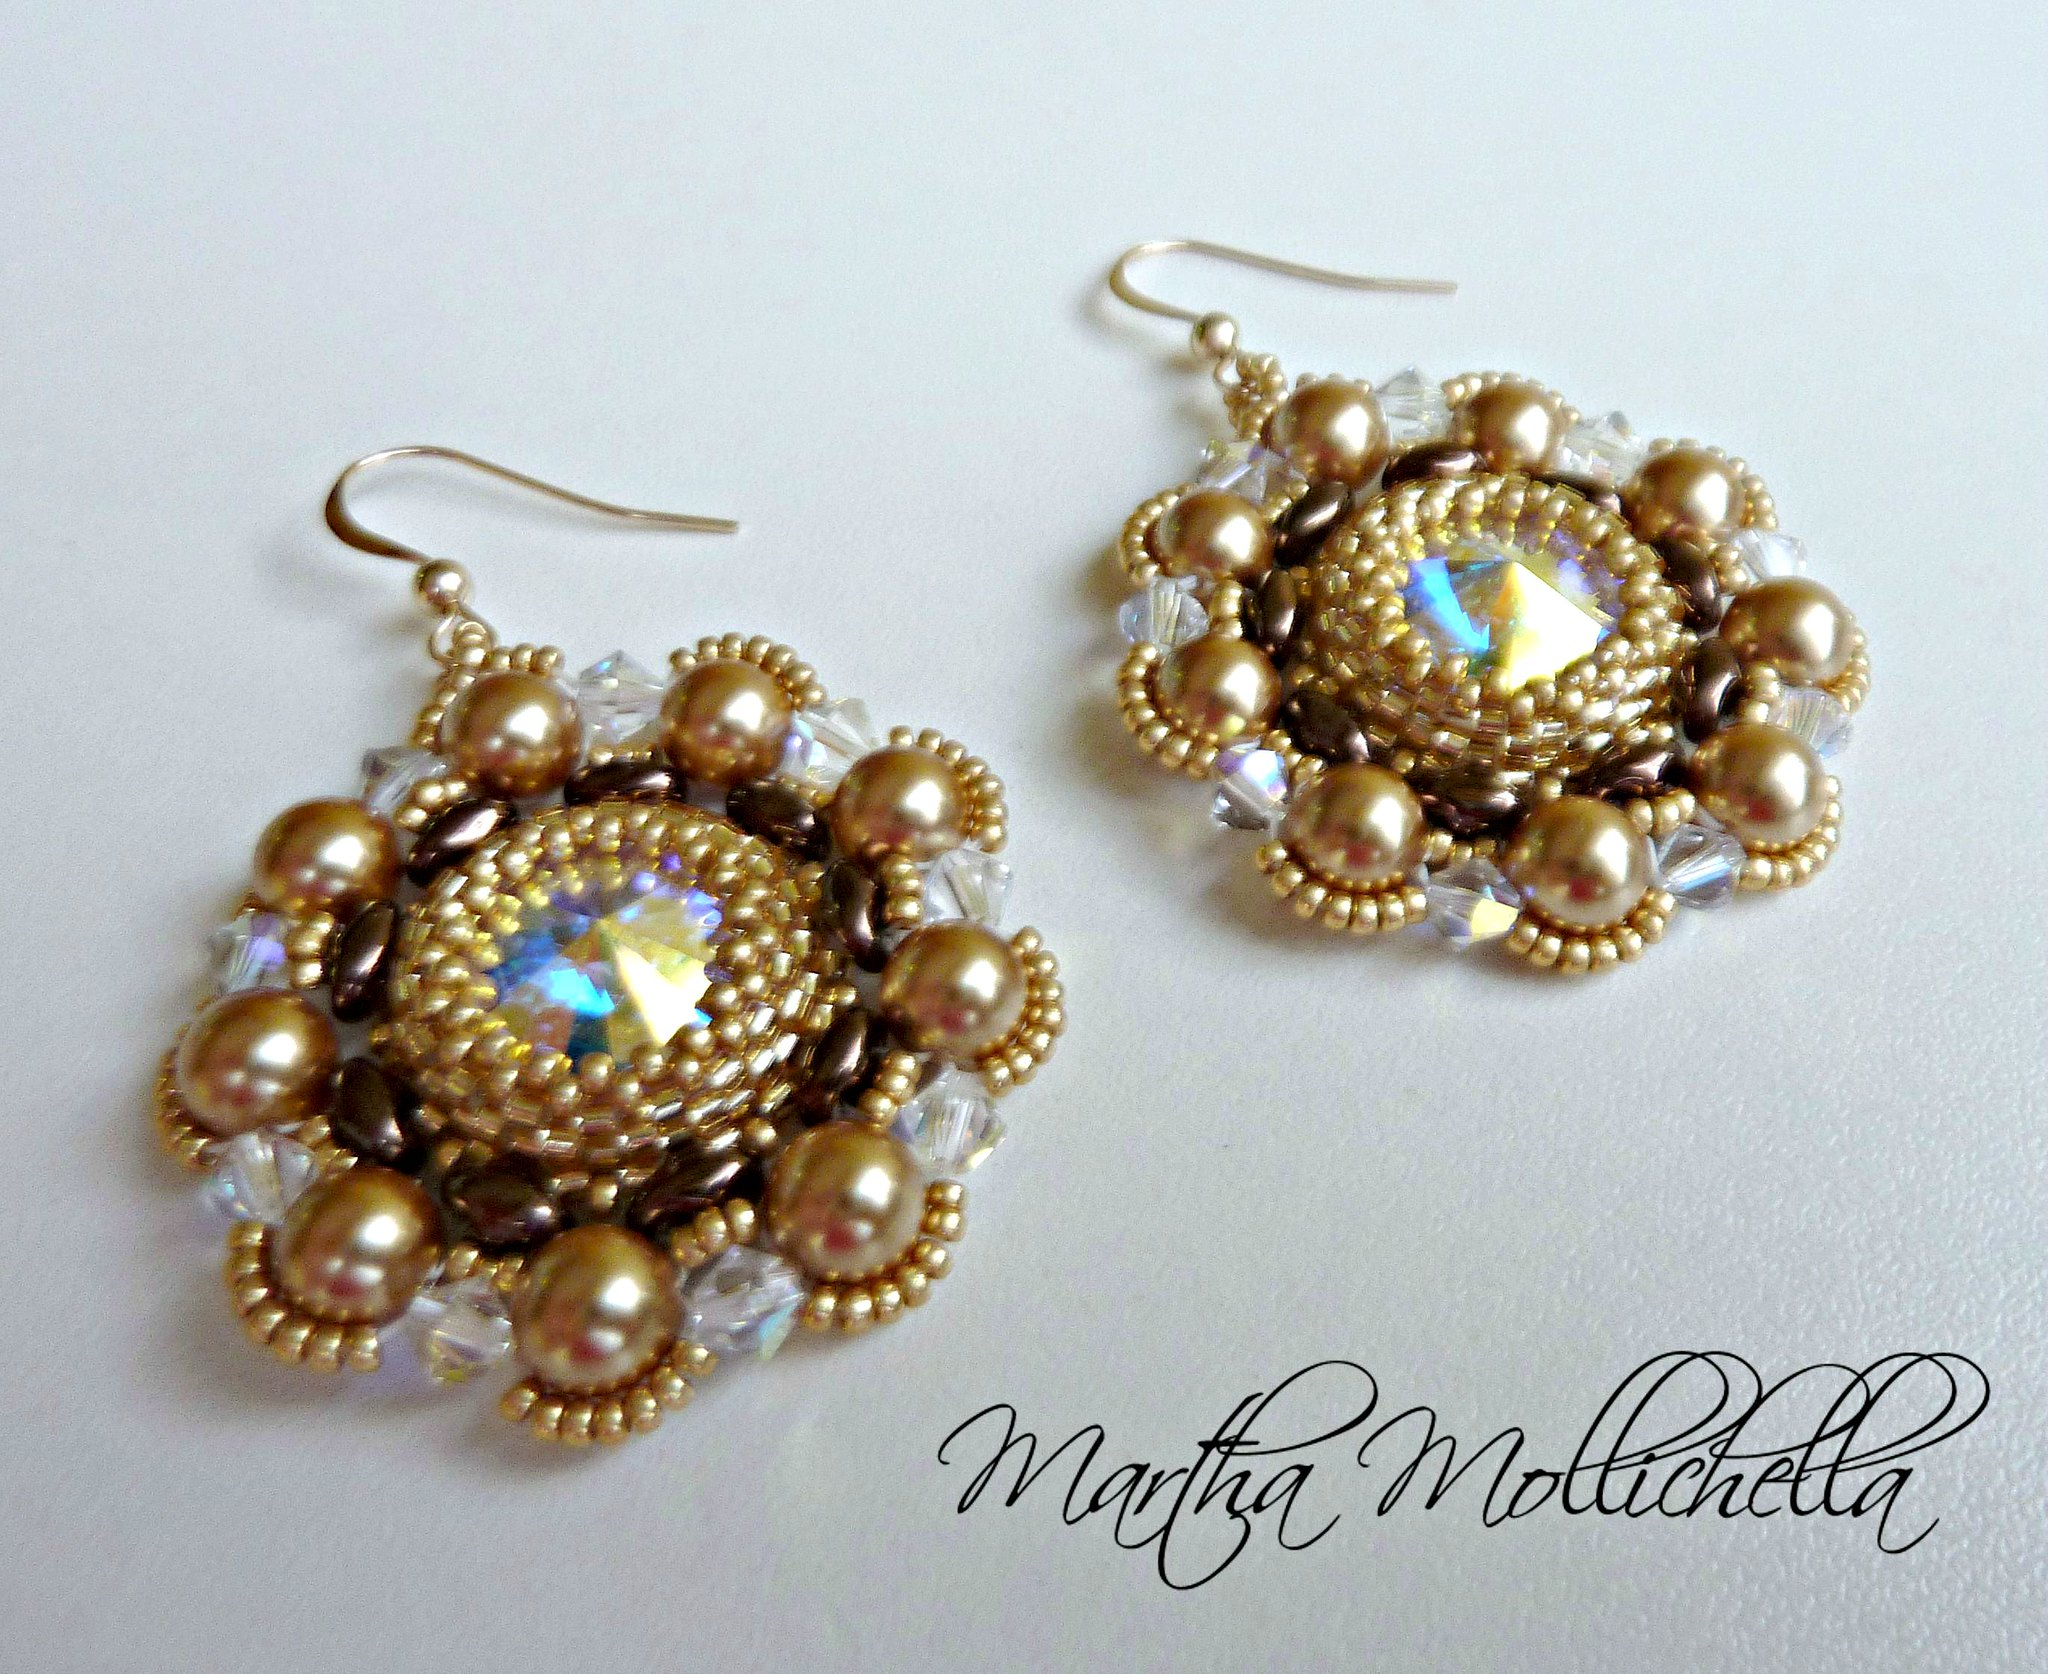 Swarovski handmade earrings with gold filled hook